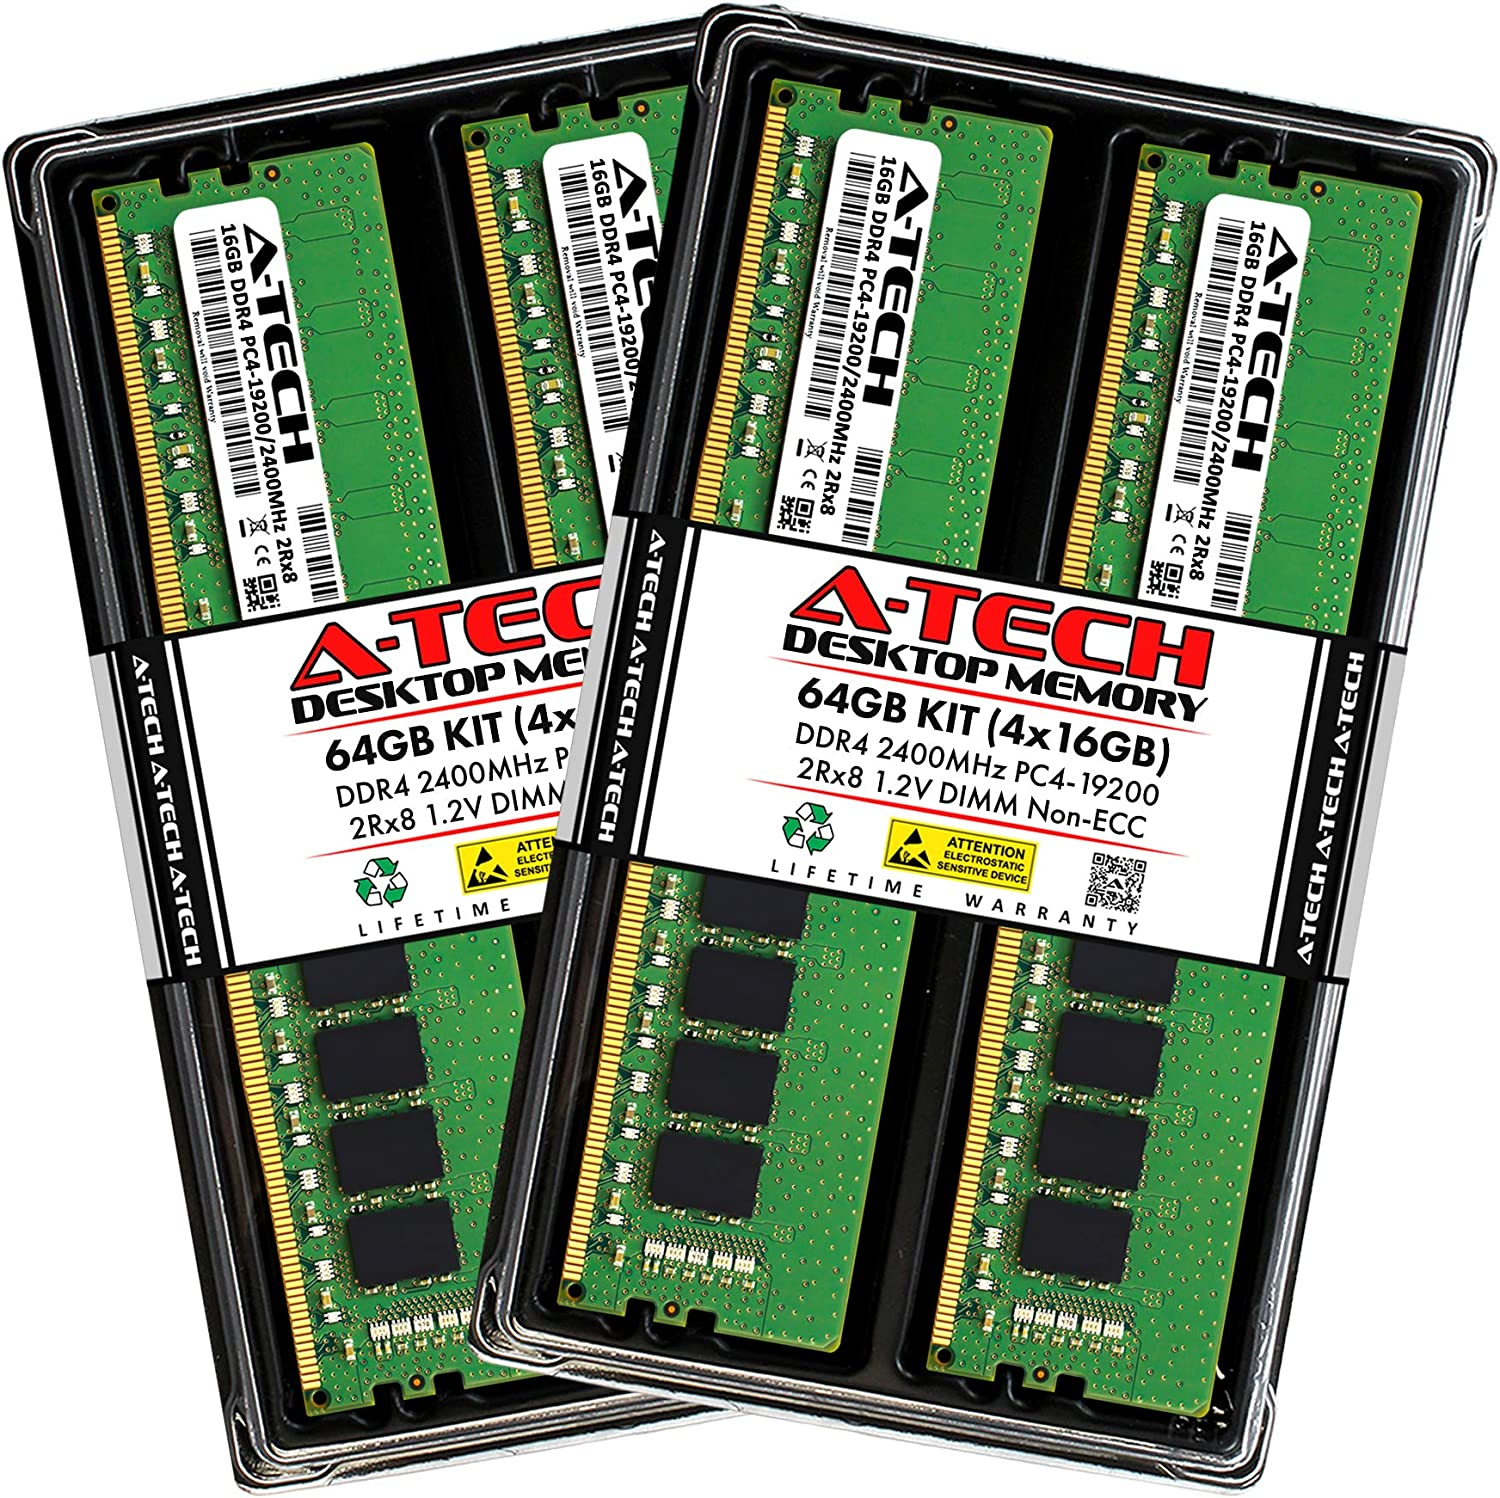 A-Tech 64GB (4x16GB) DDR4 2400MHz DIMM PC4-19200 UDIMM Non-ECC 2Rx8 1.2V CL17 288-Pin Desktop Computer RAM Memory Upgrade Kit